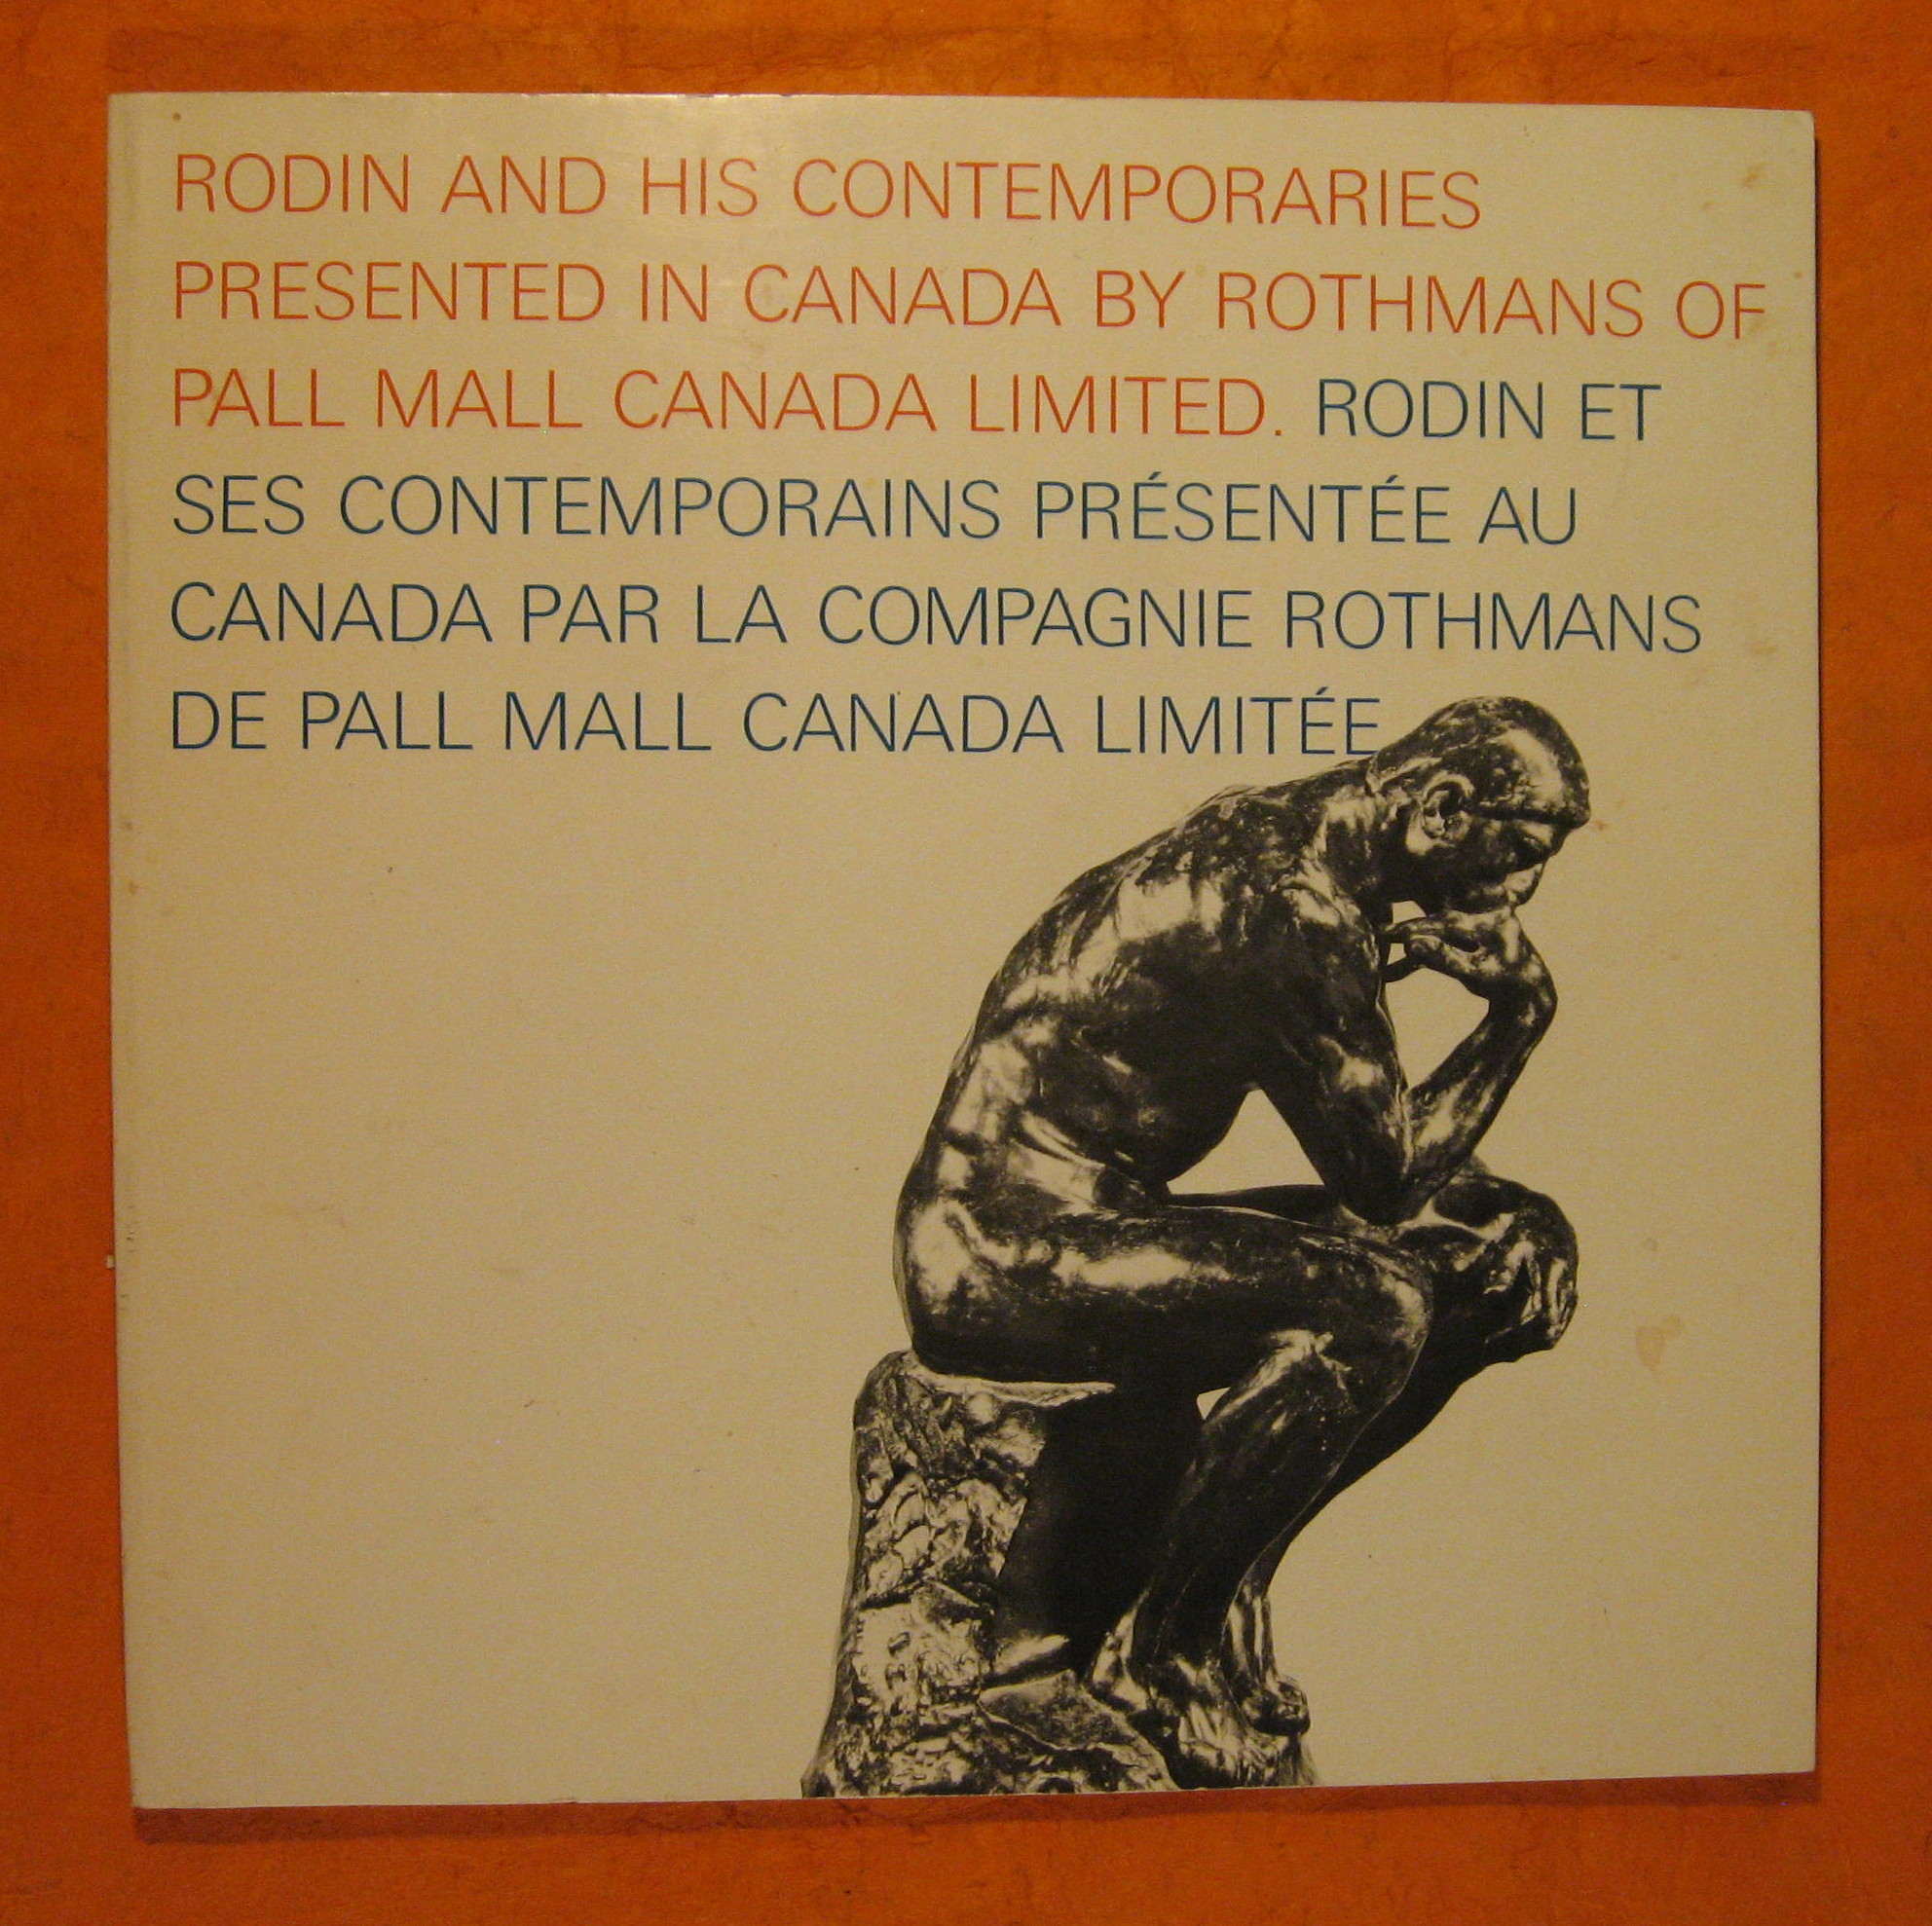 Image for Rodin and His Contemporaries Presented in Canada By Rothmans of Pall Mall Canada Limited /  Rodin et ses contemporains presente au Canada par la compagnie Rothmans de Pall Mall Canada Limitee